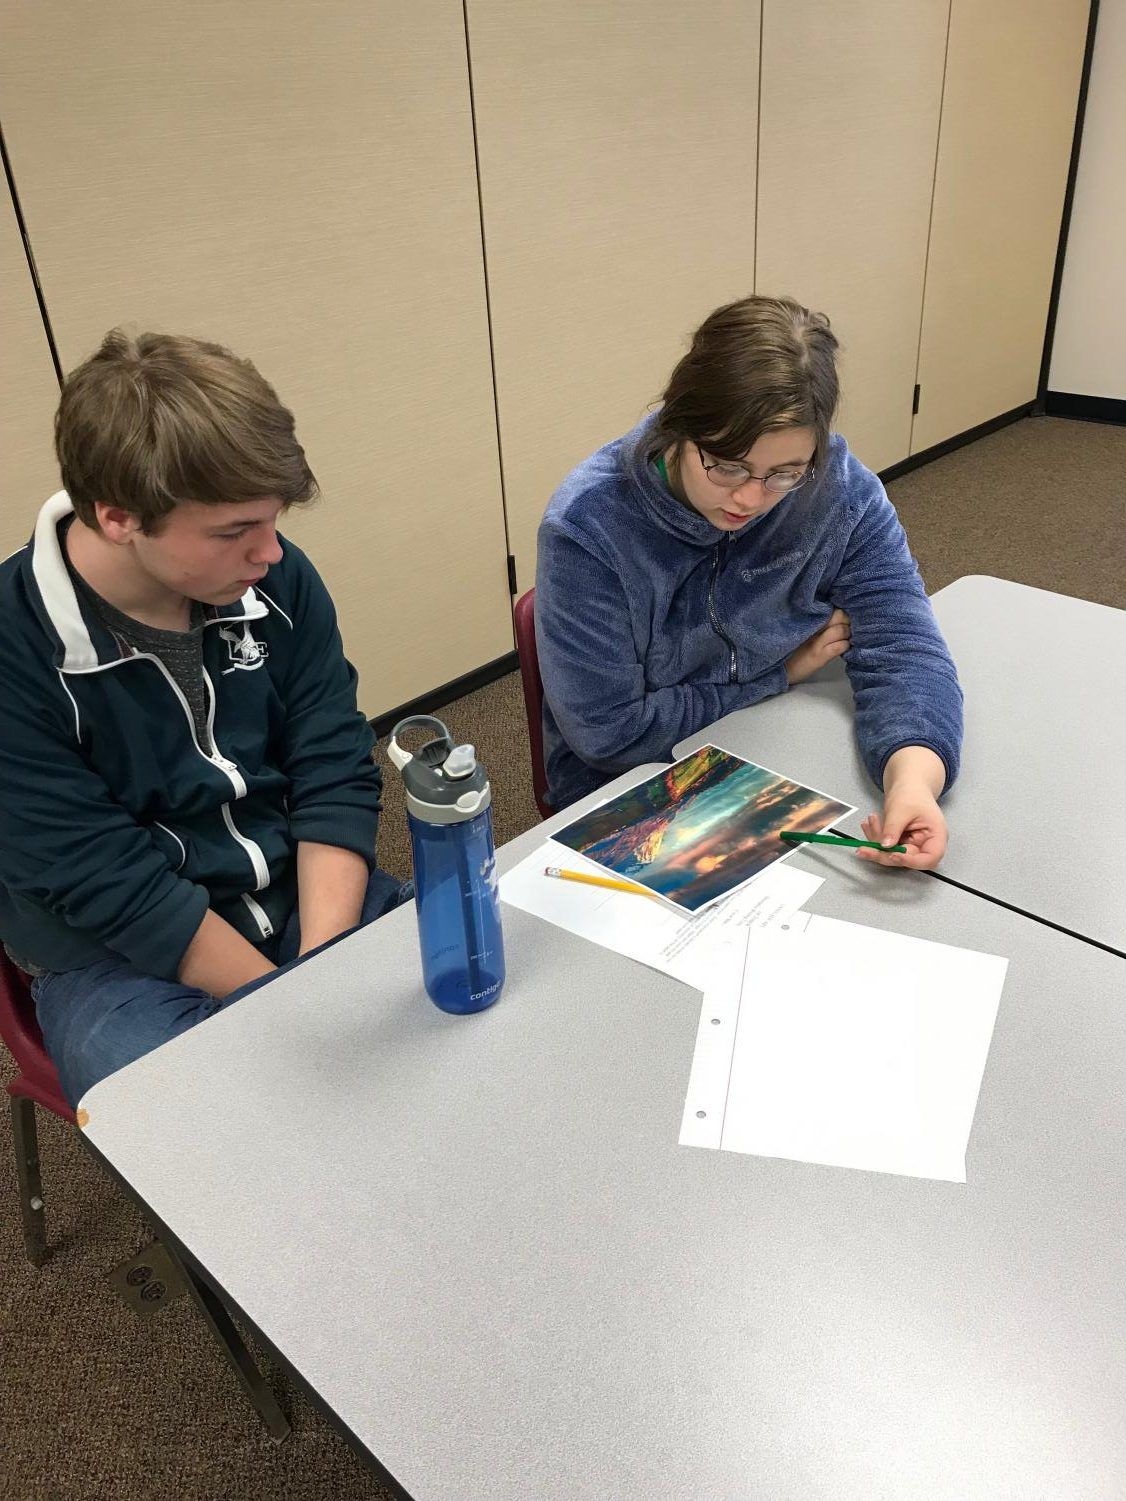 Members of the Language Arts Club work on their submissions.